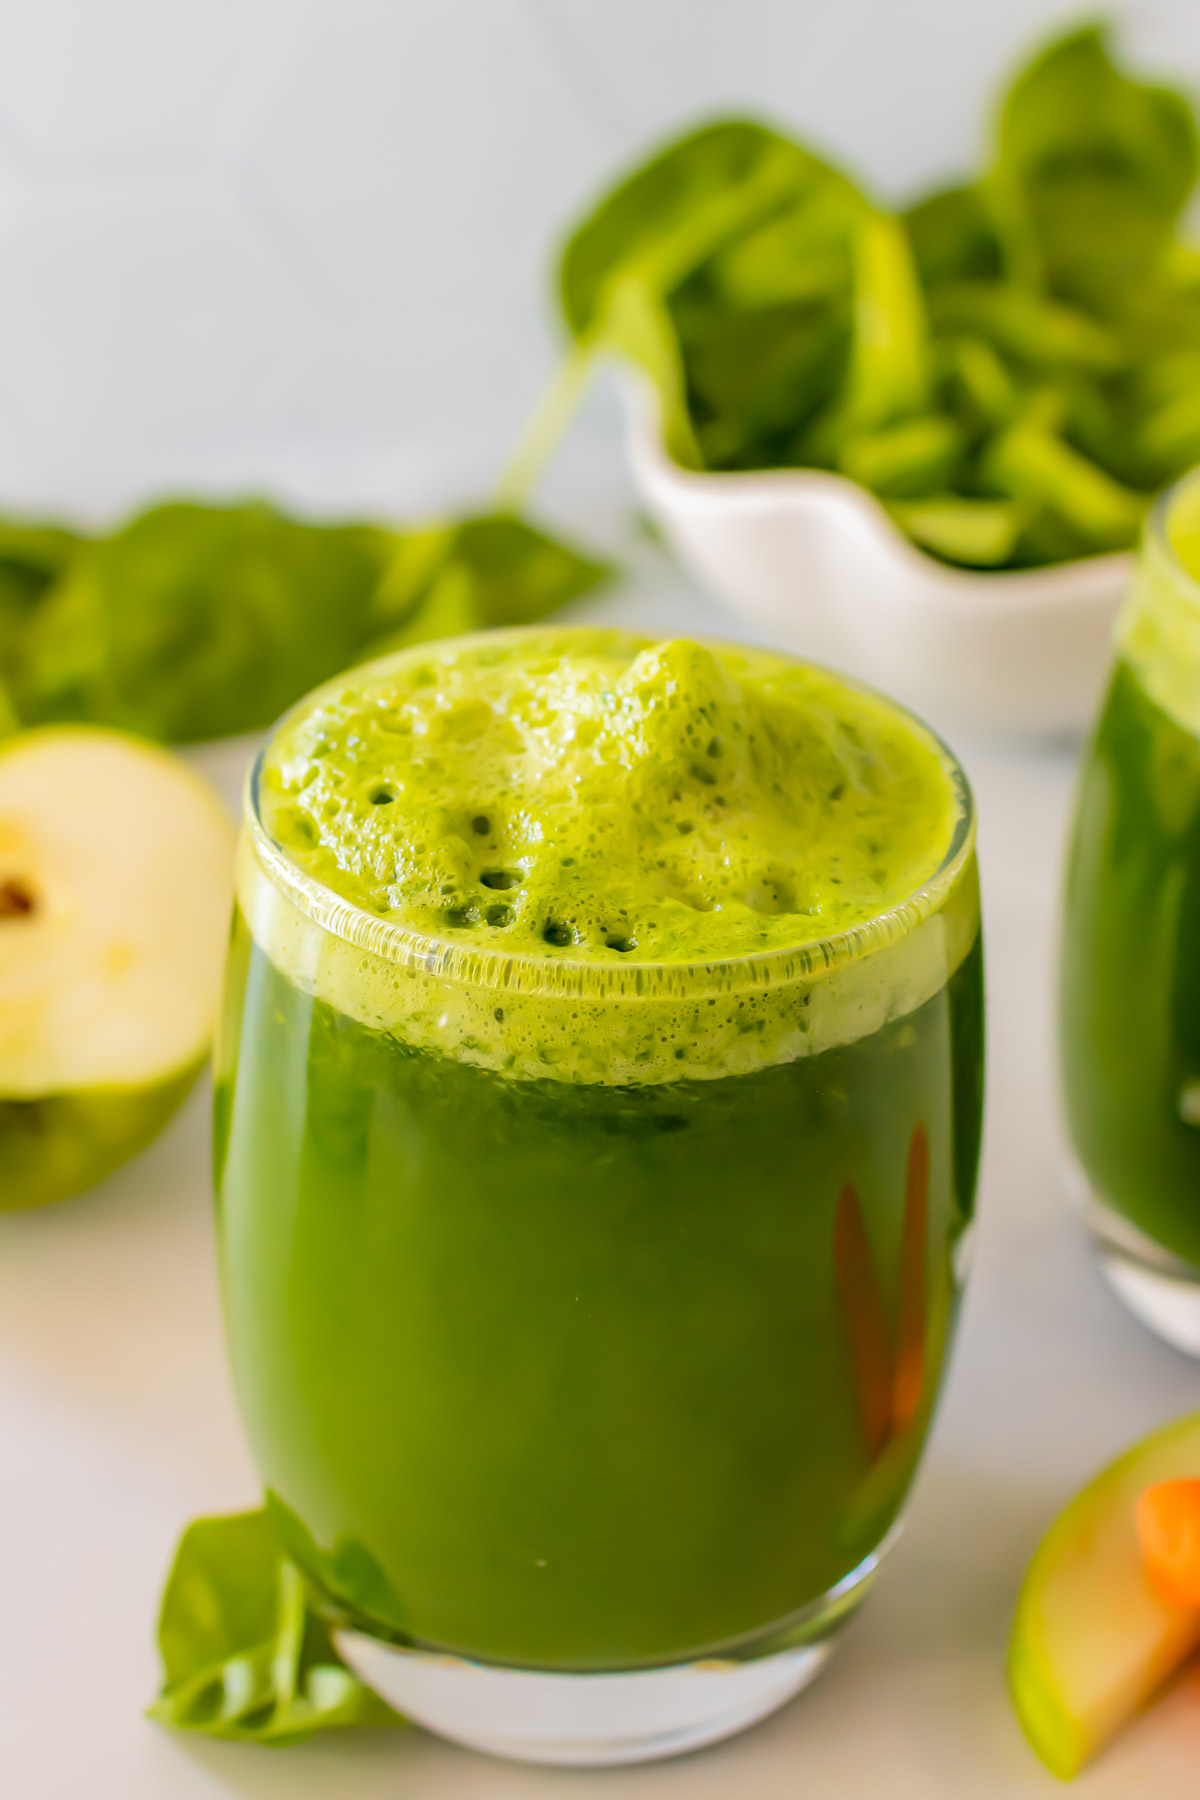 Green juice in a glass.